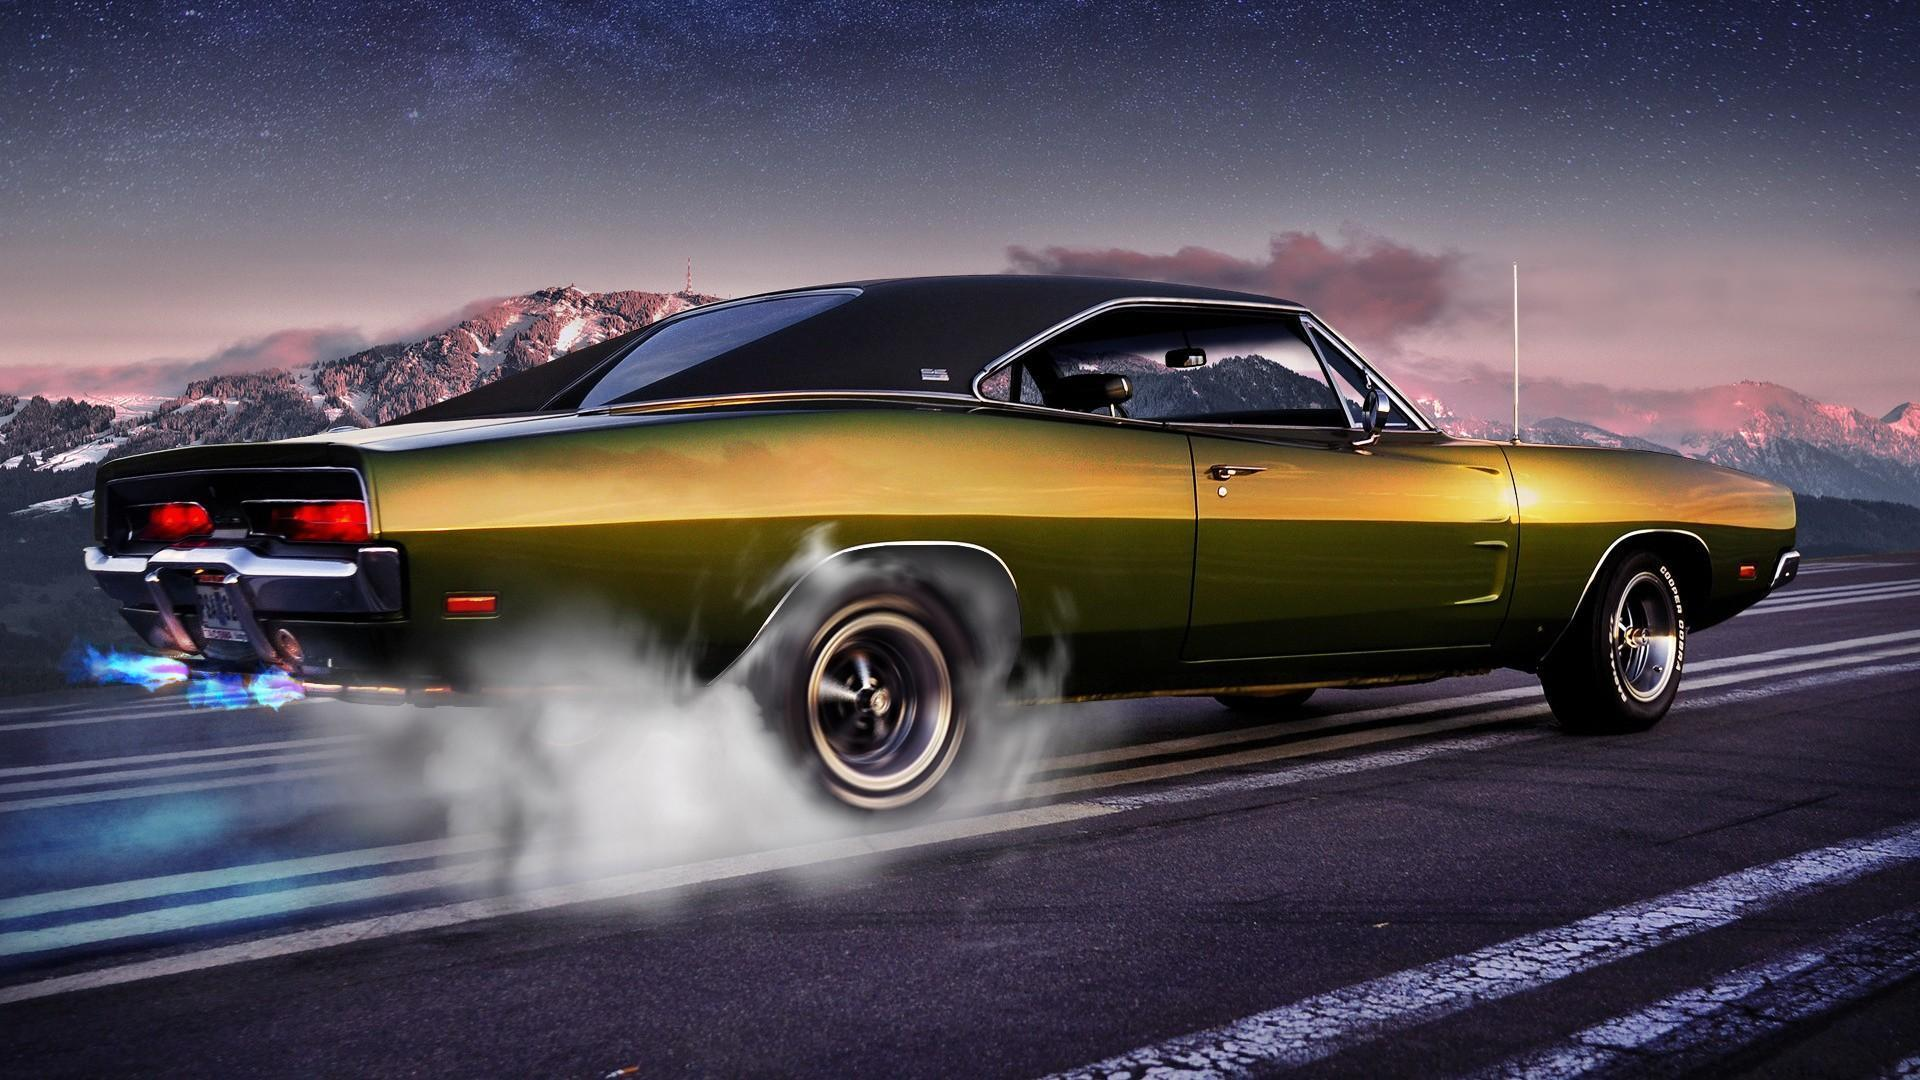 Classic Muscle Car Wallpapers Top Free Classic Muscle Car Backgrounds Wallpaperaccess